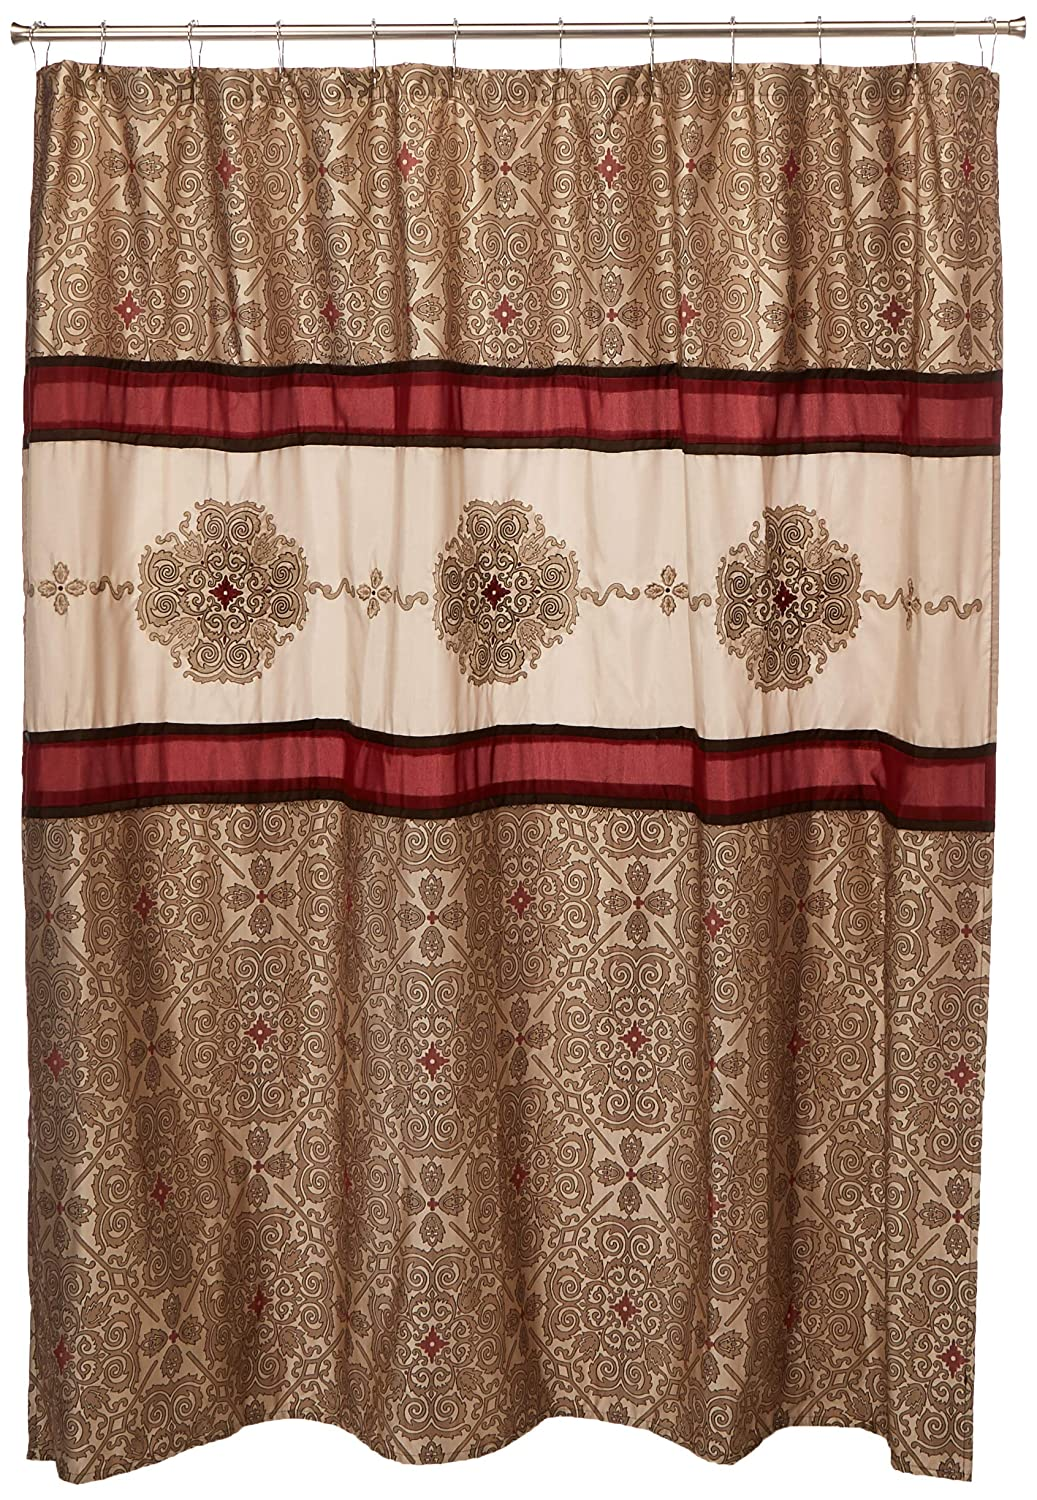 Madison Park Donovan Embroidered Shower Curtain Red 72x72